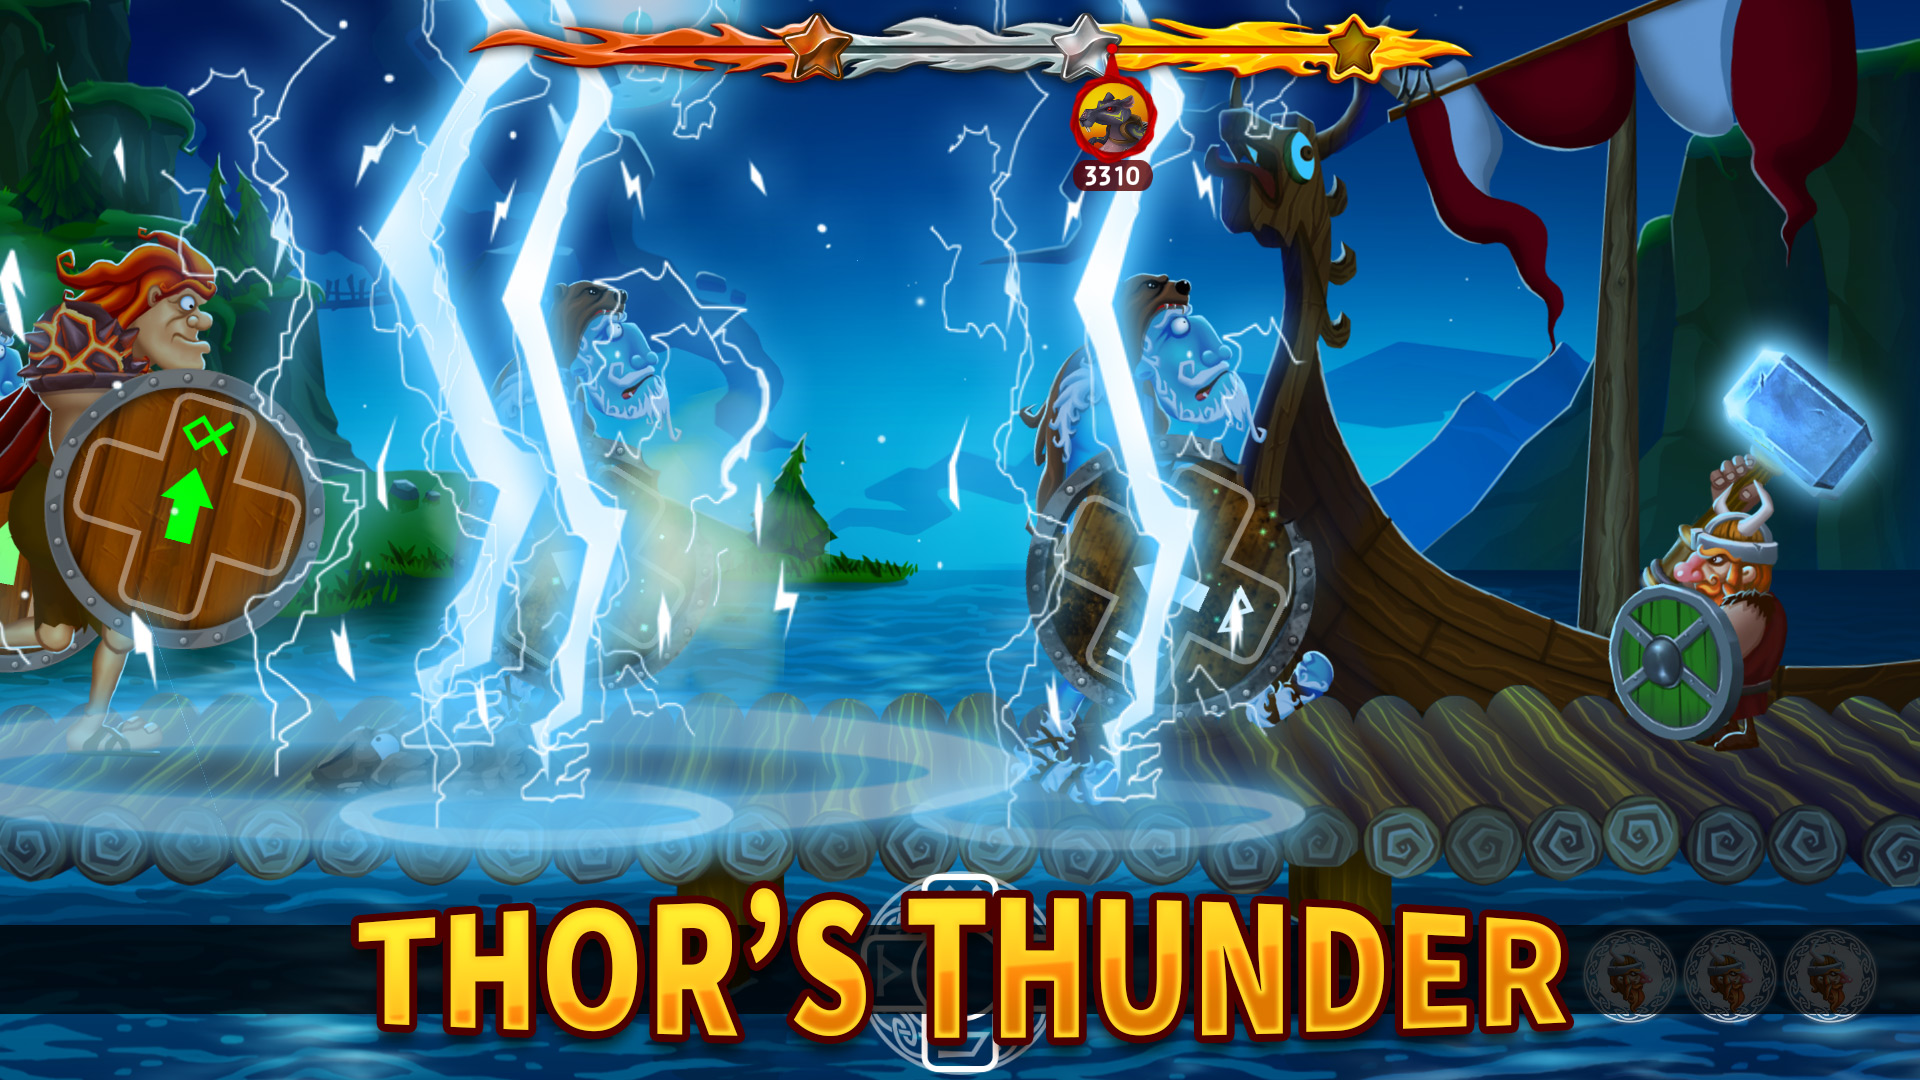 PP_THORS_THUNDER